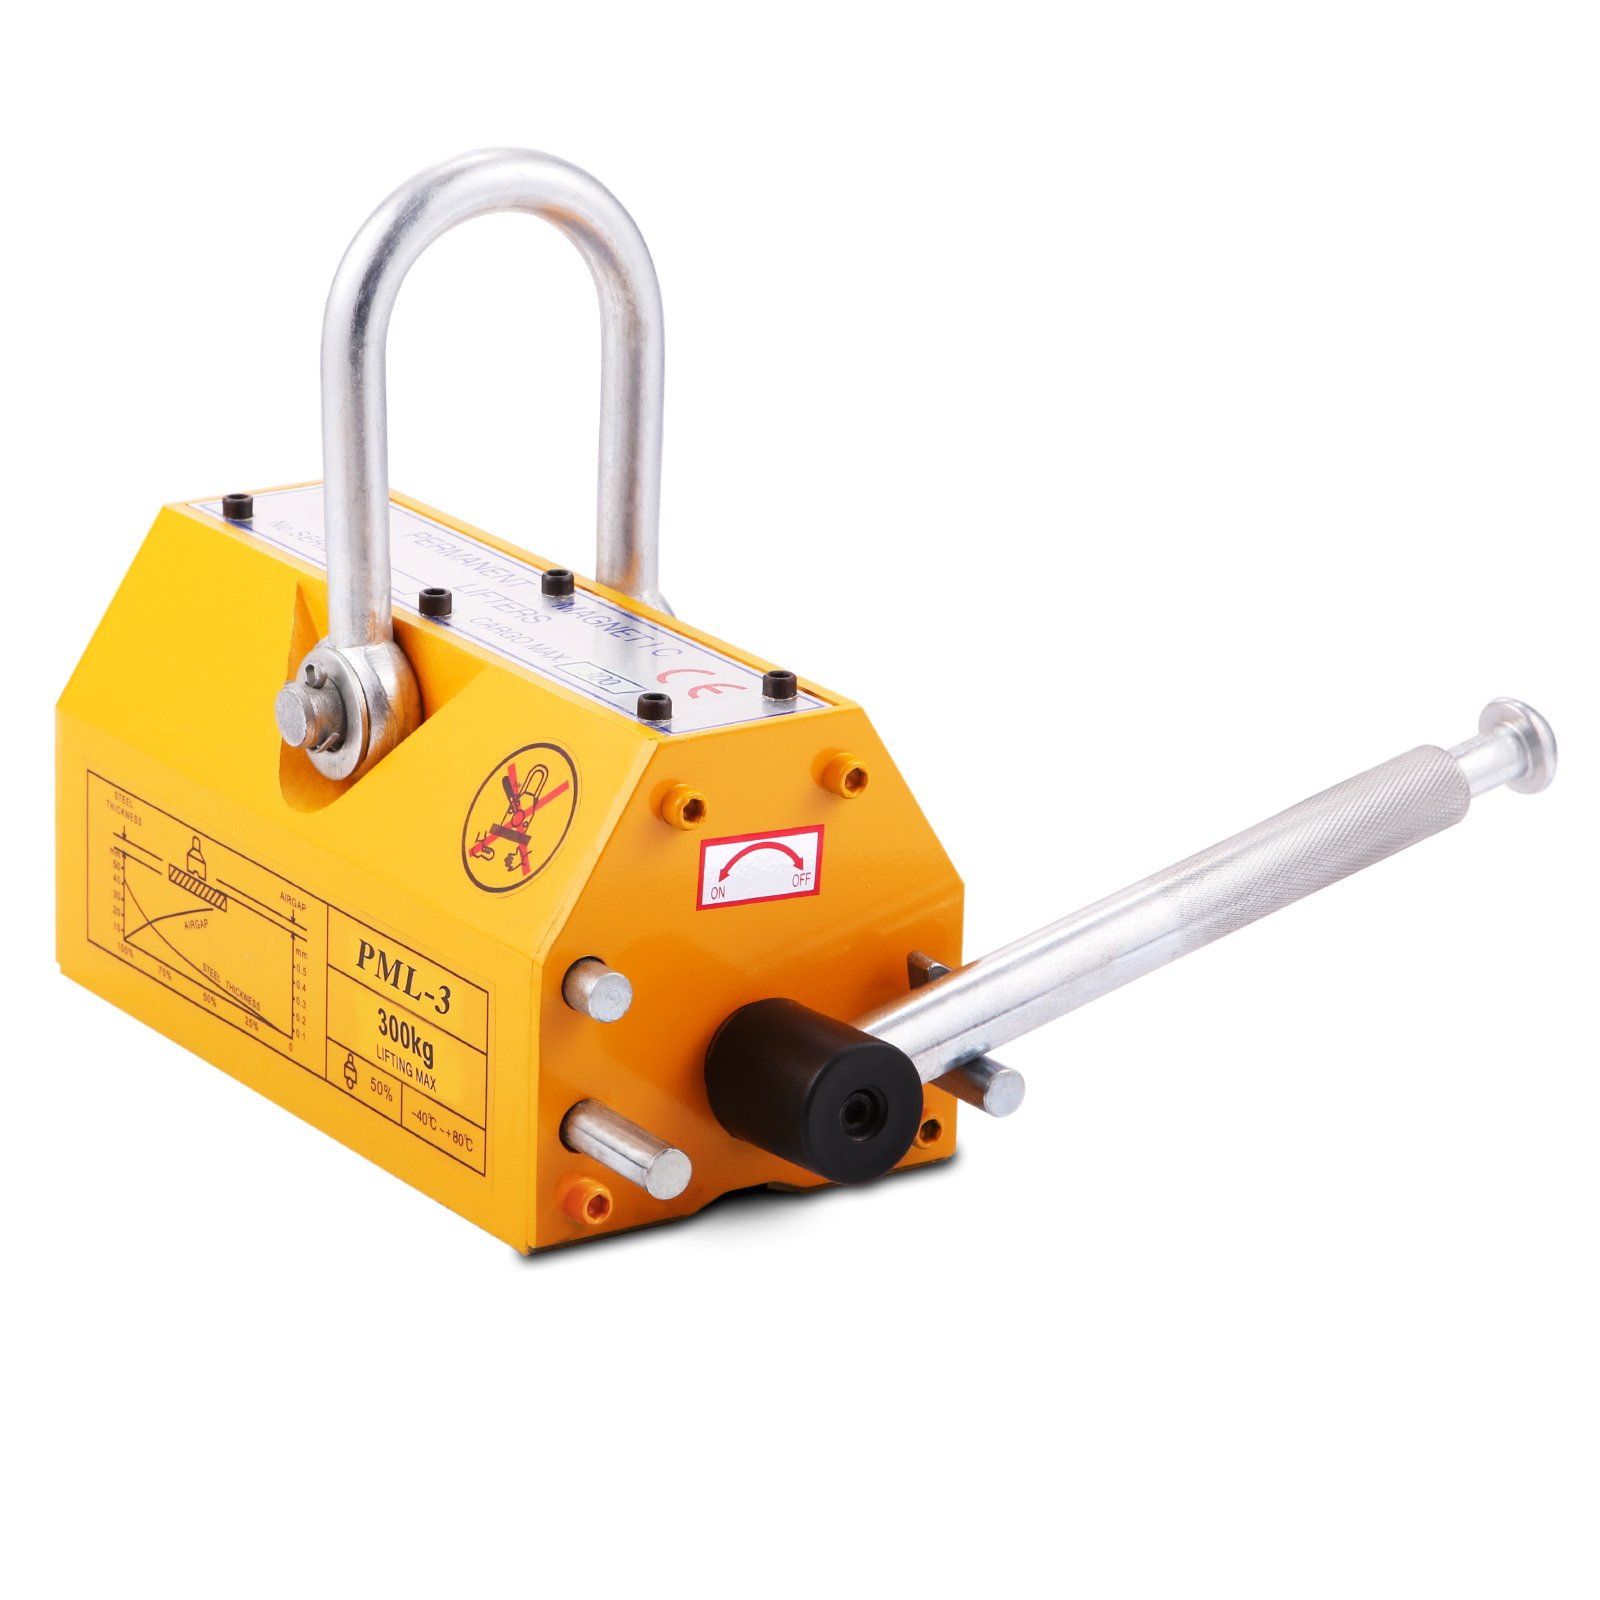 OrangeA 660LBS 300KG Steel Magnet Lifter Neodymium Magnetic Lifting Magnet Magnetic Shop Crane Metal Lifting Hoist (660LBS) by OrangeA